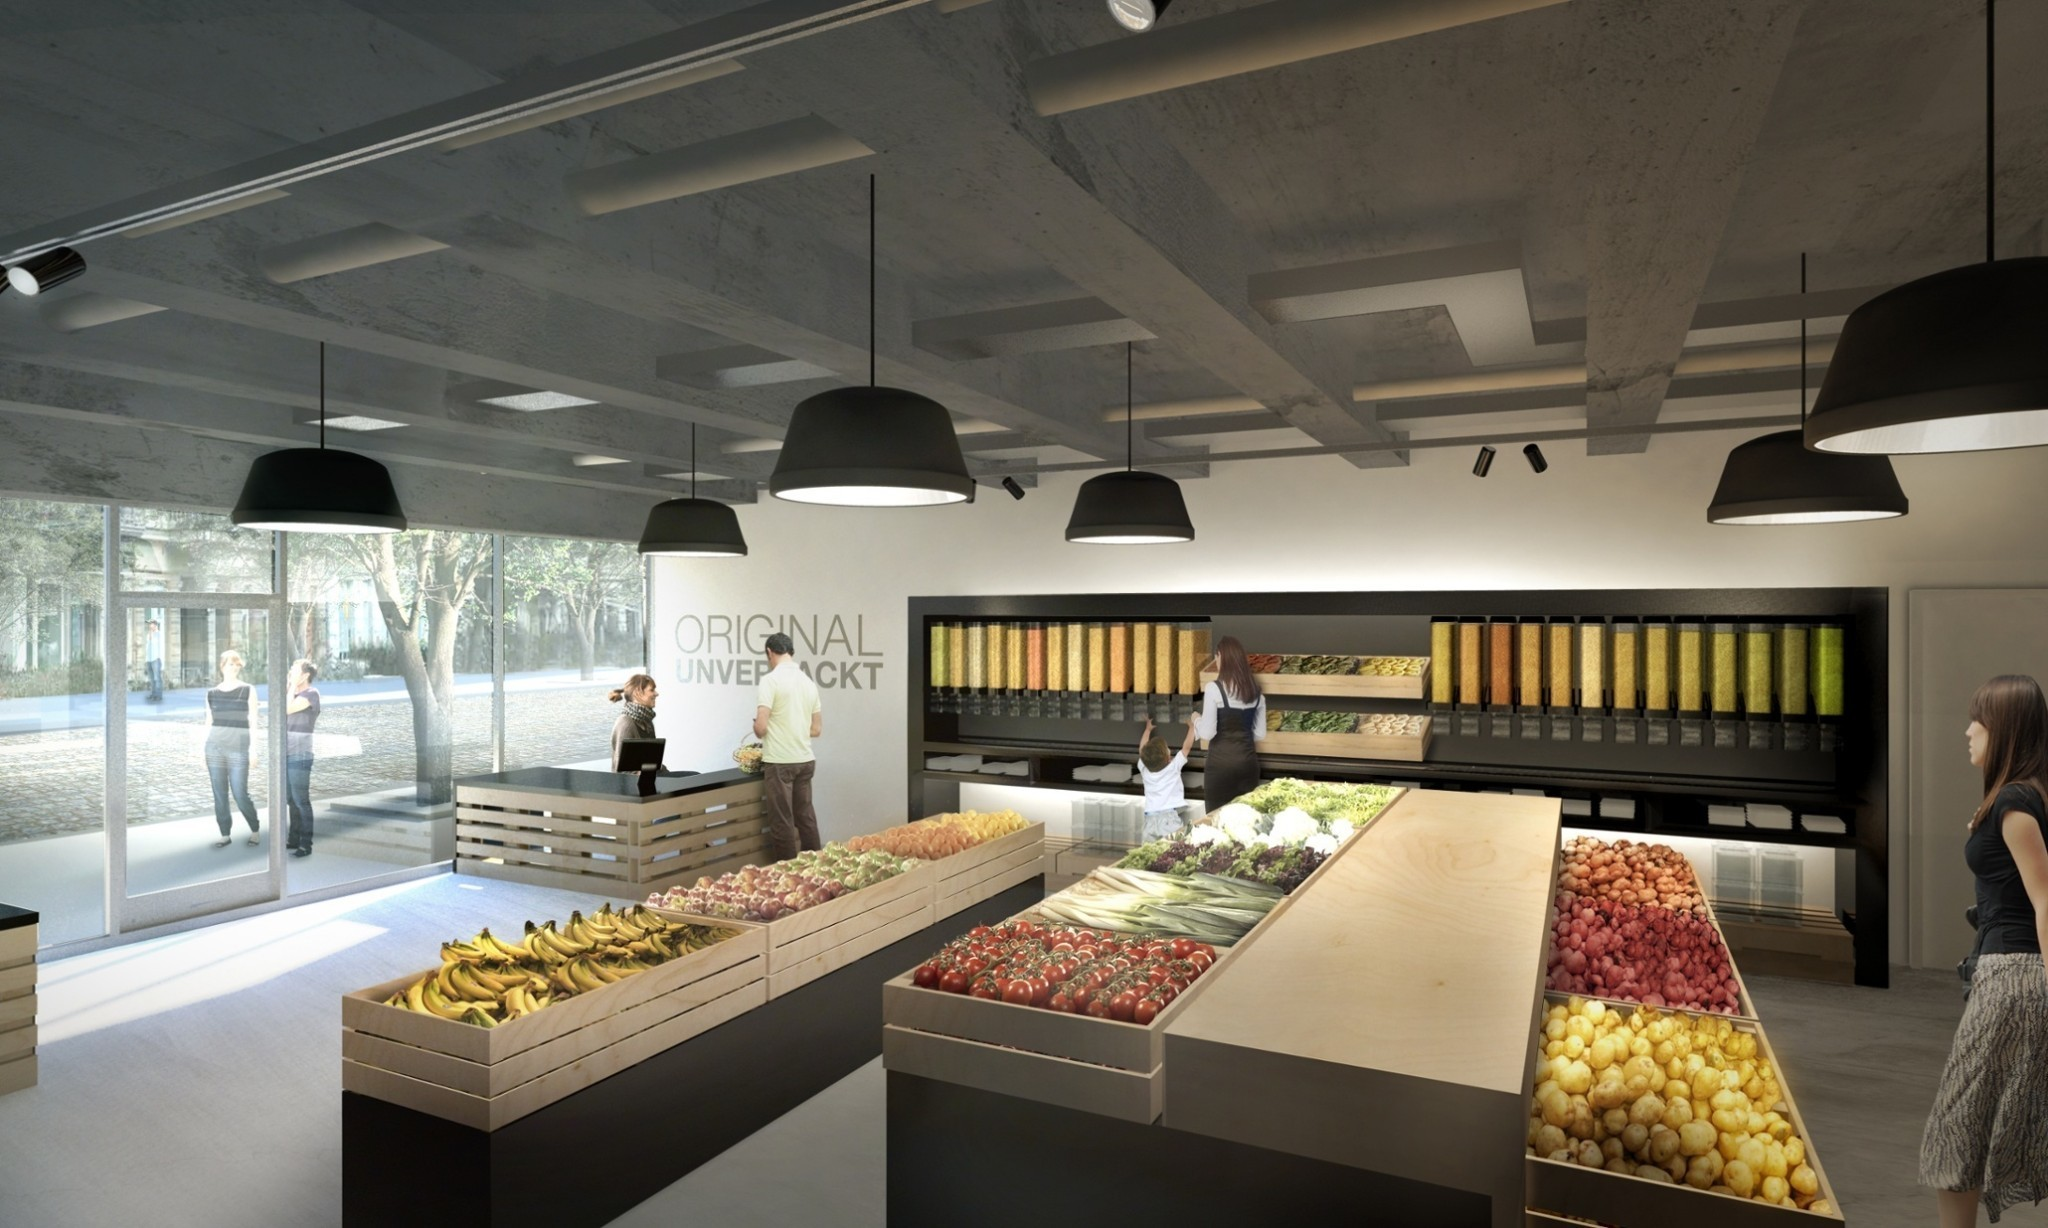 Berlin duo launch a supermarket with no packaging